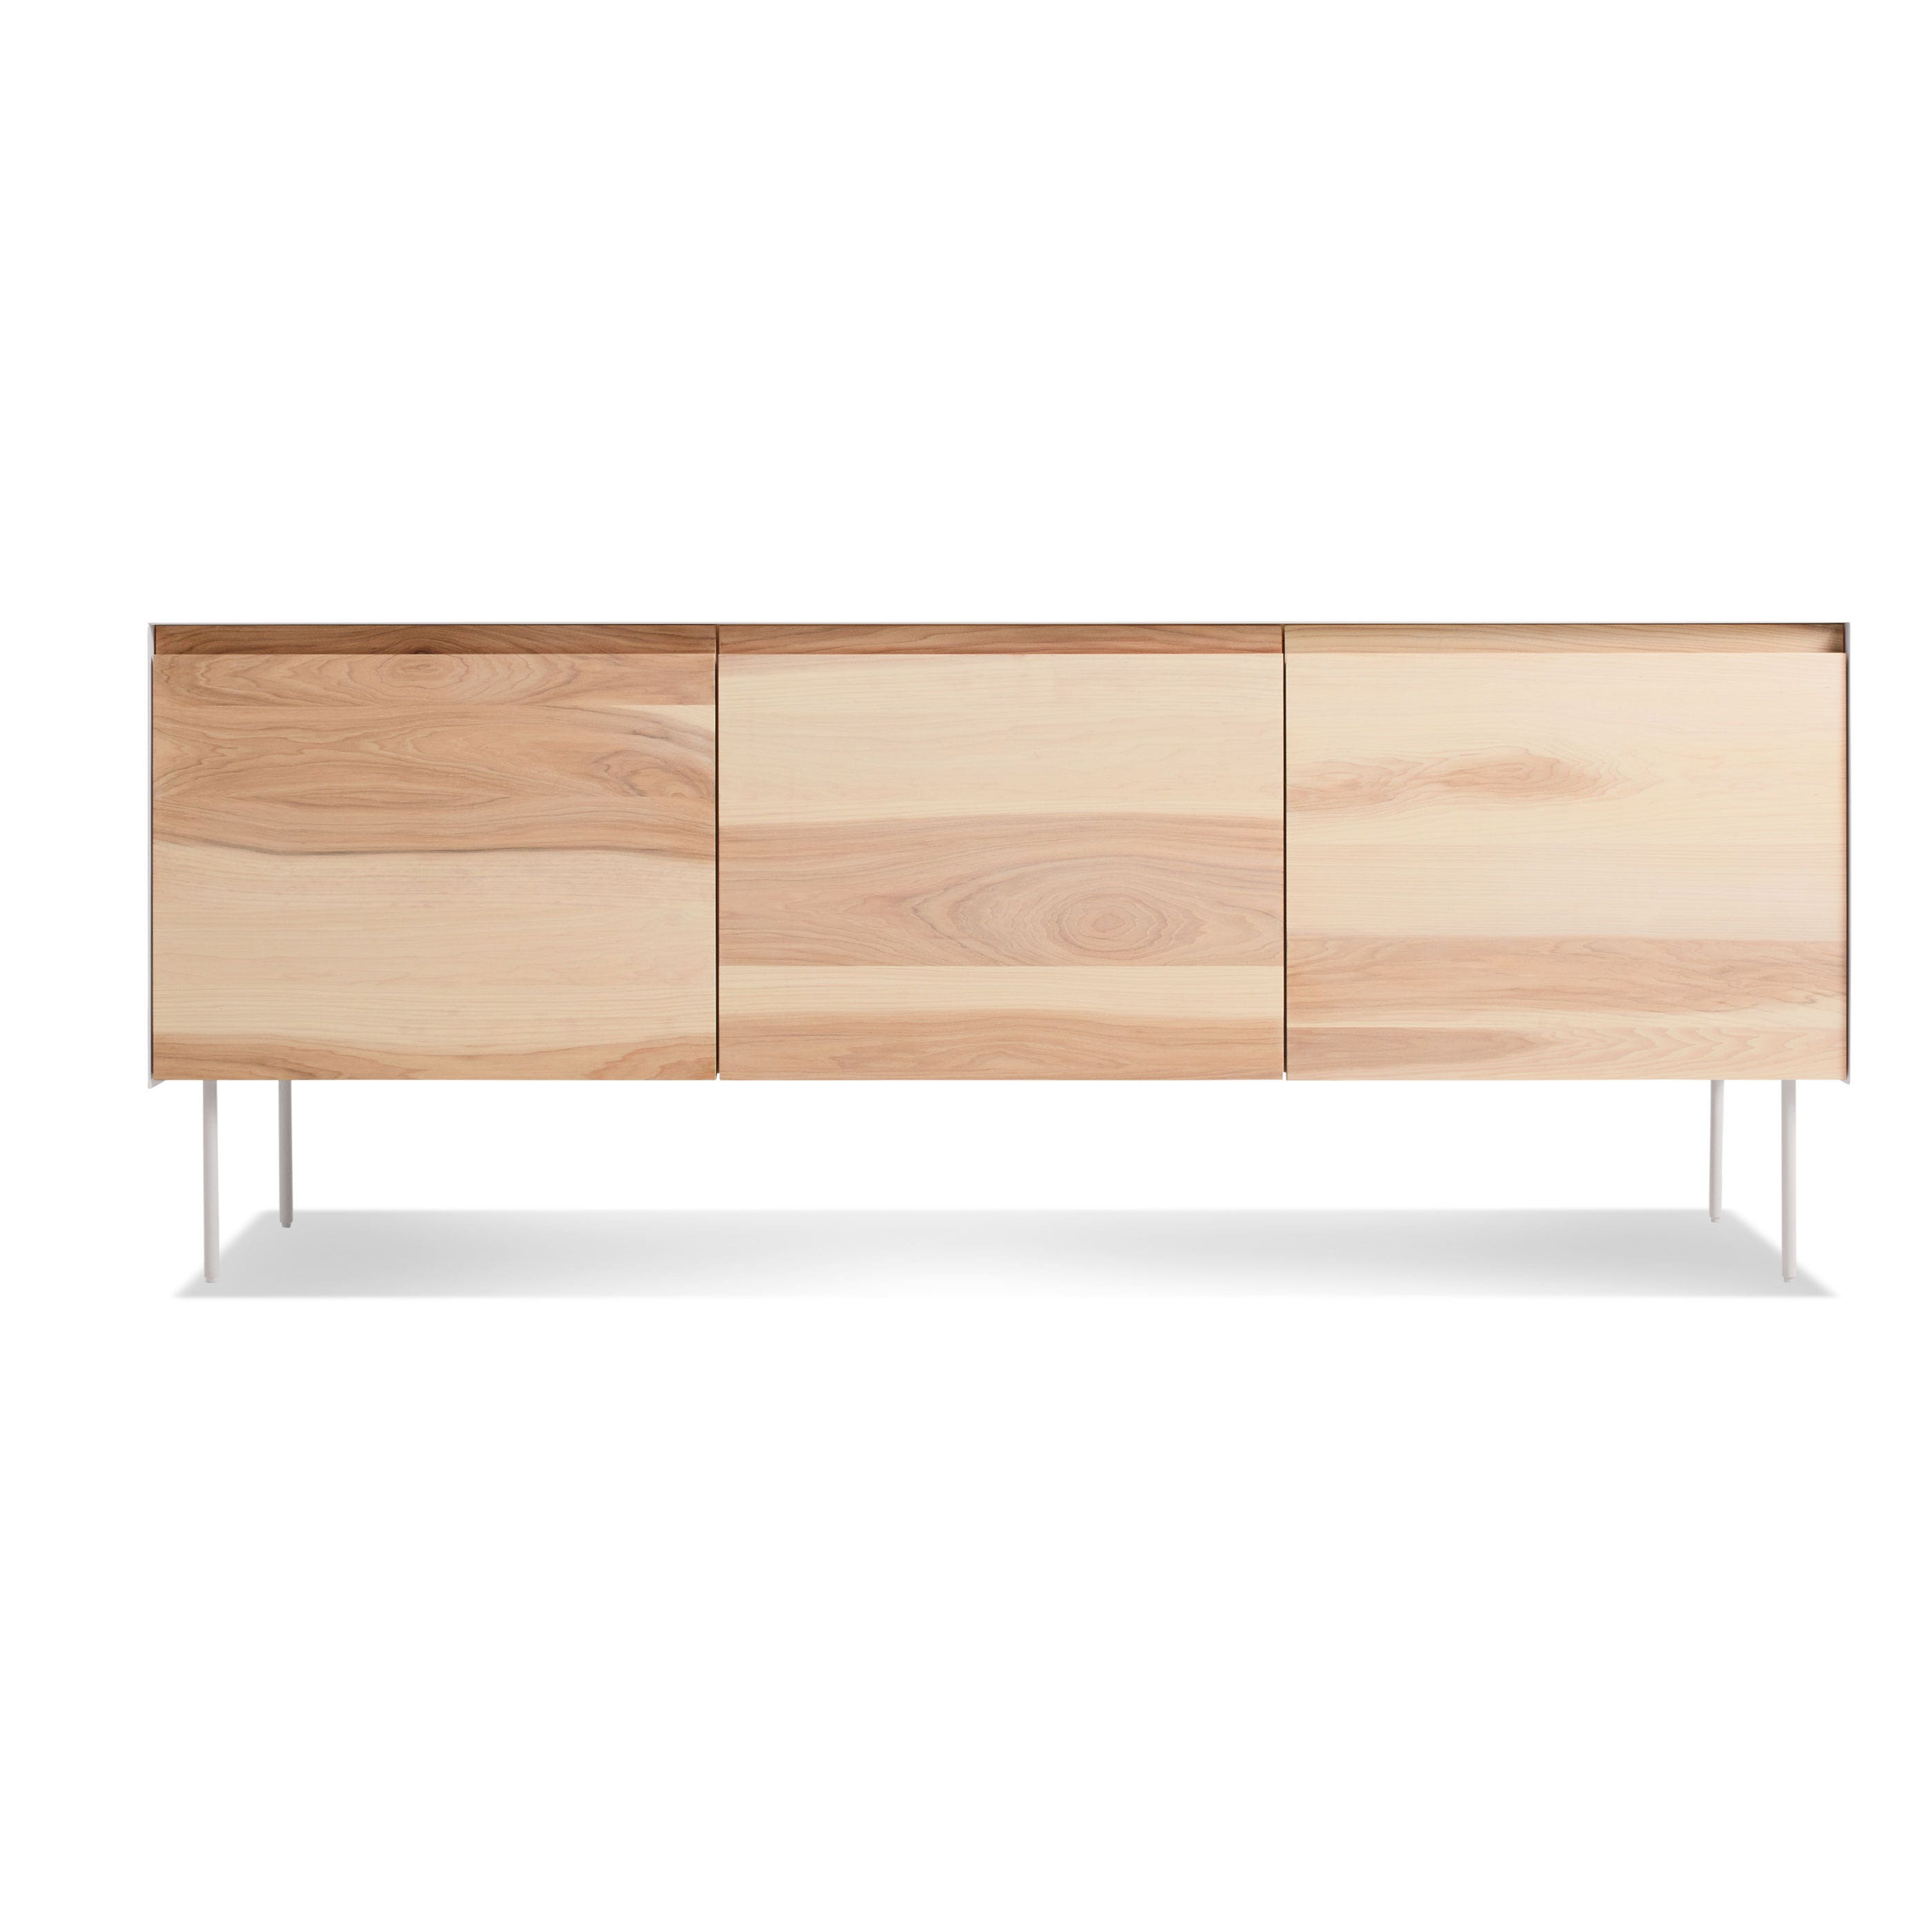 clad  door credenza  modern media cabinet and credenza  blu dot - previous image clad  door credenza  hickory  white